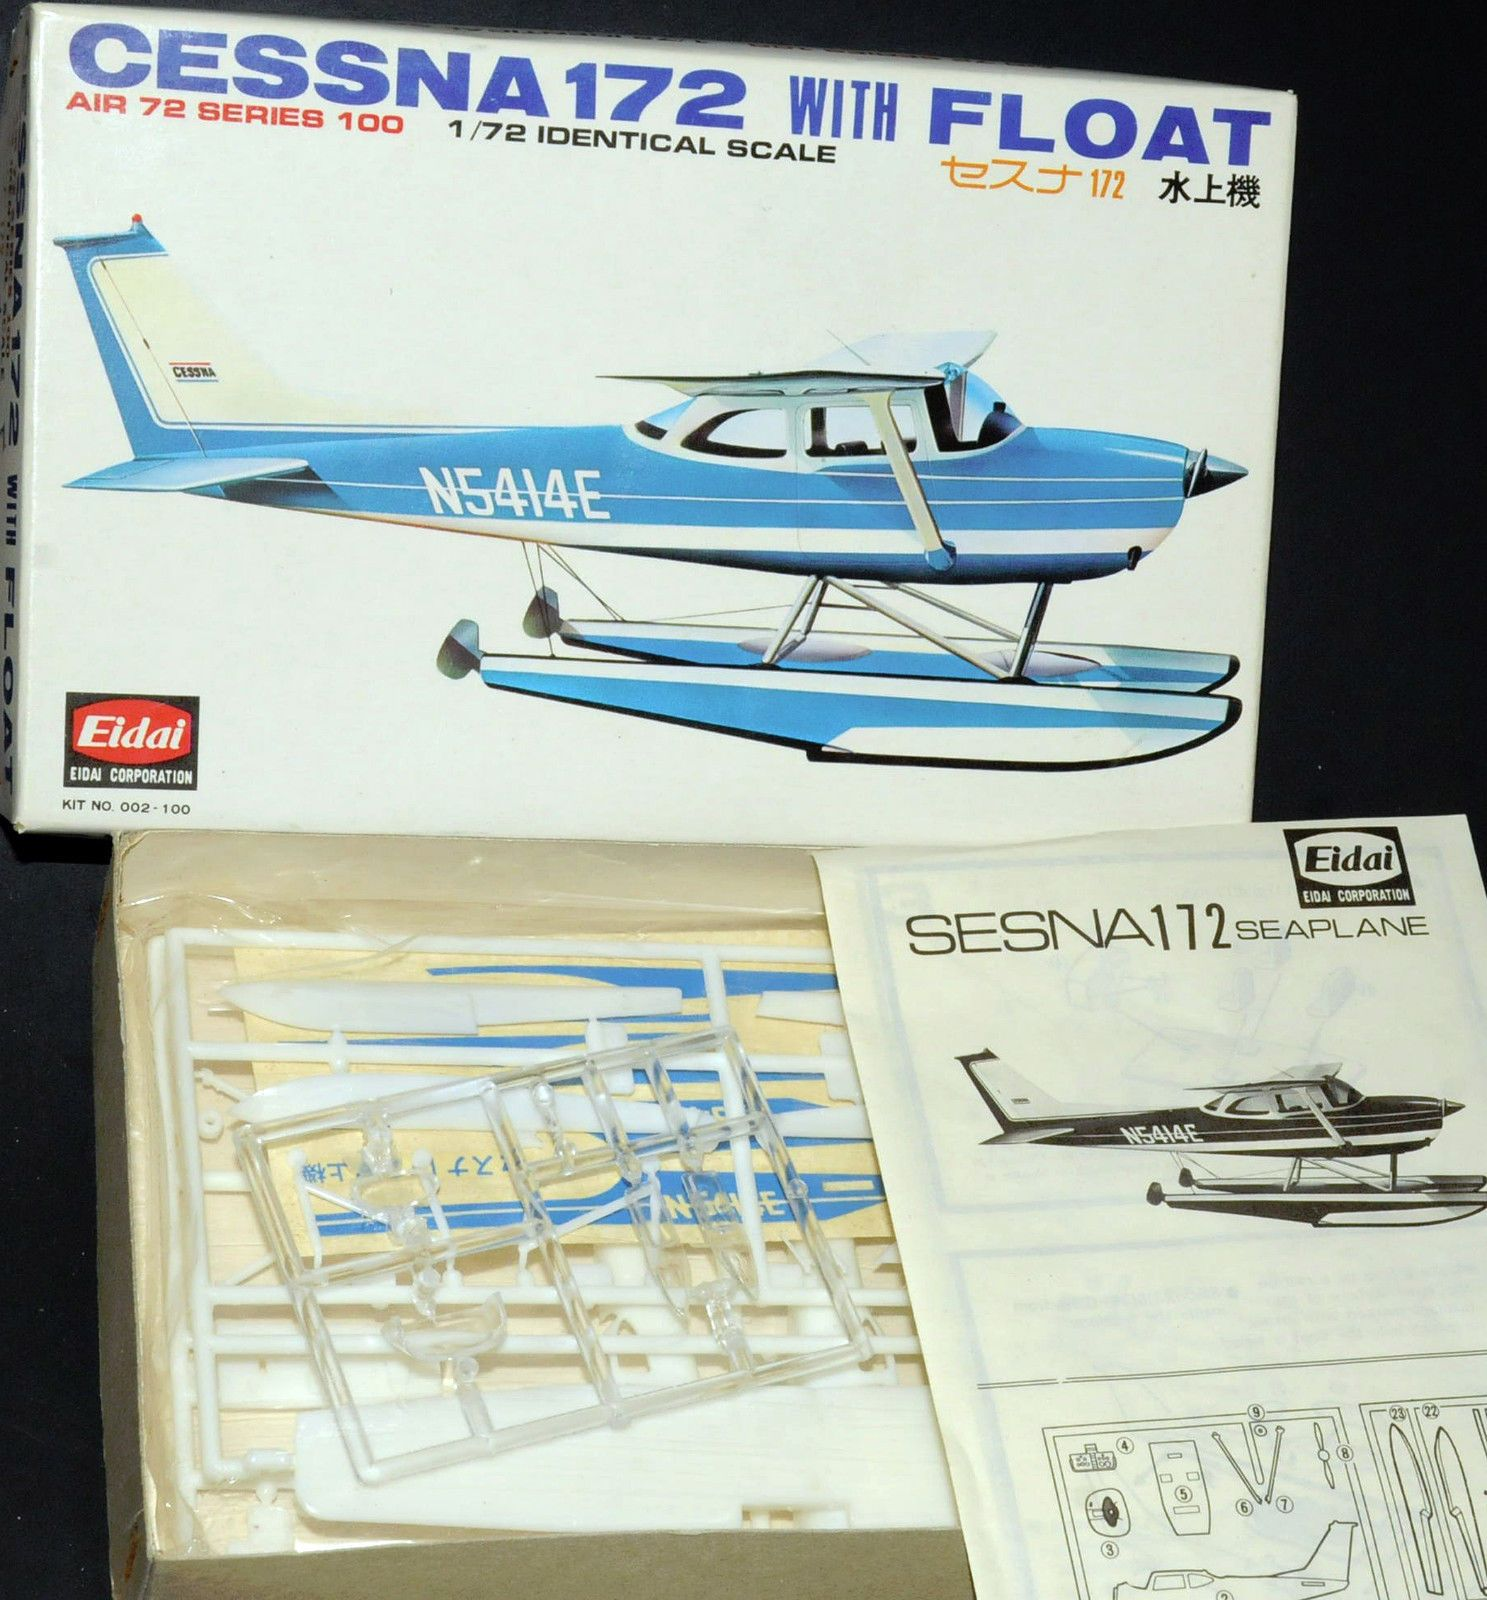 Aircraft Non-Military 1189: Eidai 1 72 Cessna 172 With Float Model